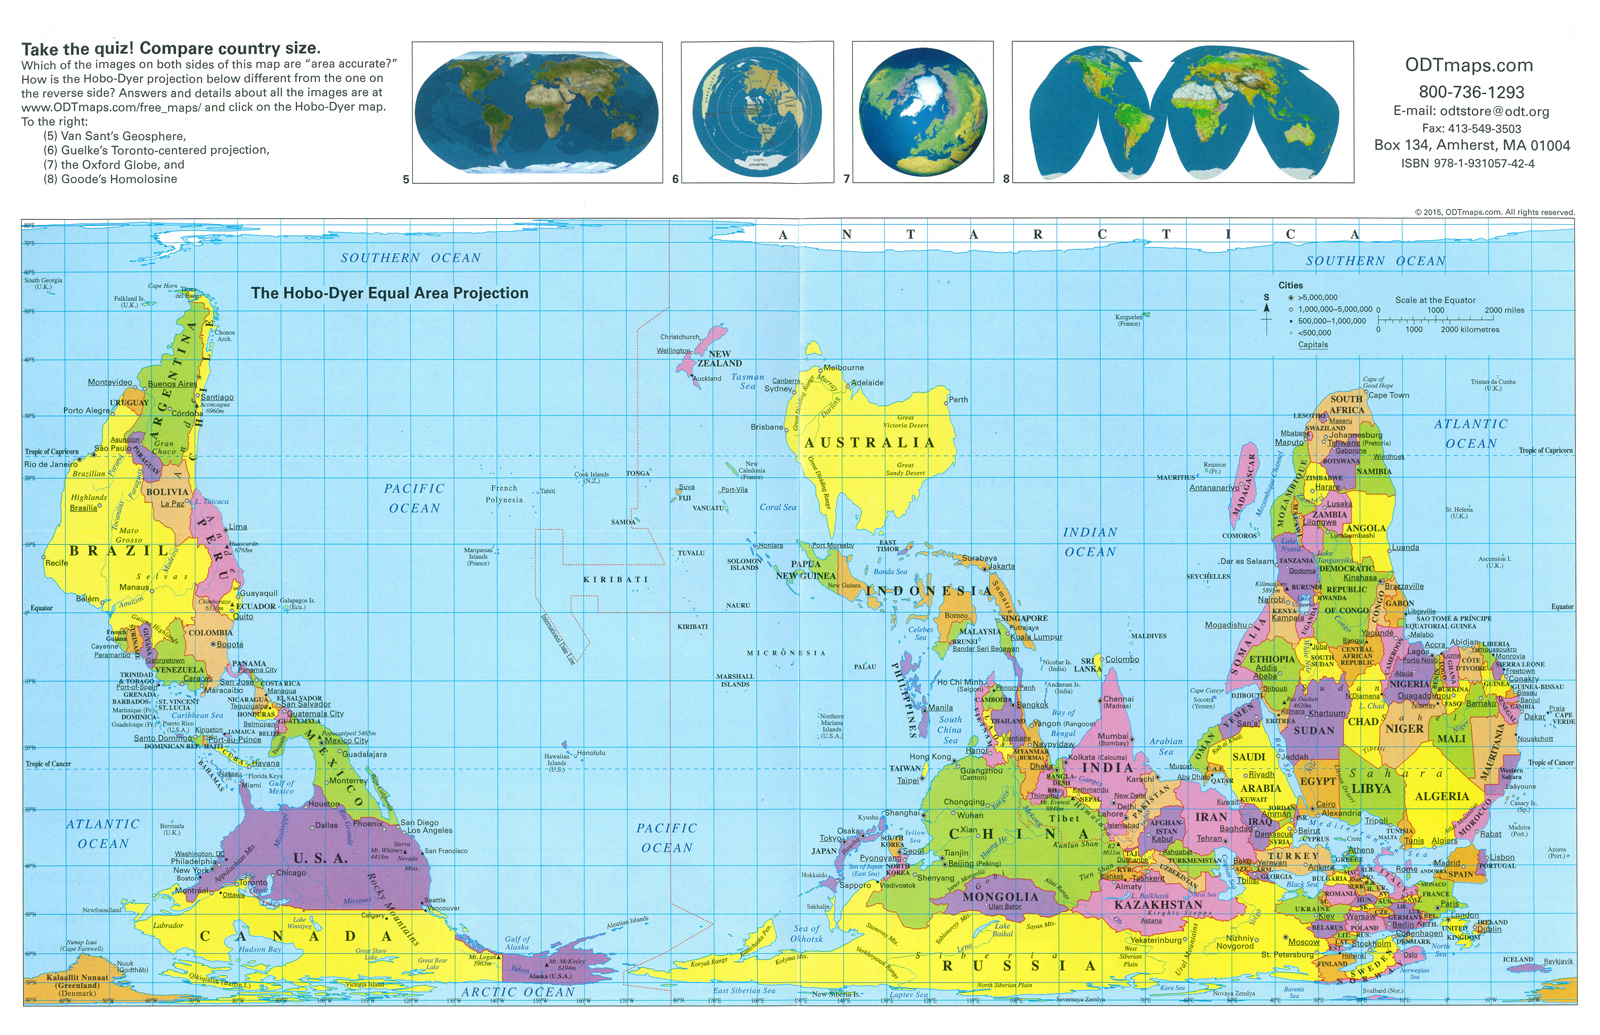 Hobo dyer placemat folded map new internationalist fair trade shop retains qualities of the other equal area cylindrical projections but is more visually satisfying a startling south up gumiabroncs Images